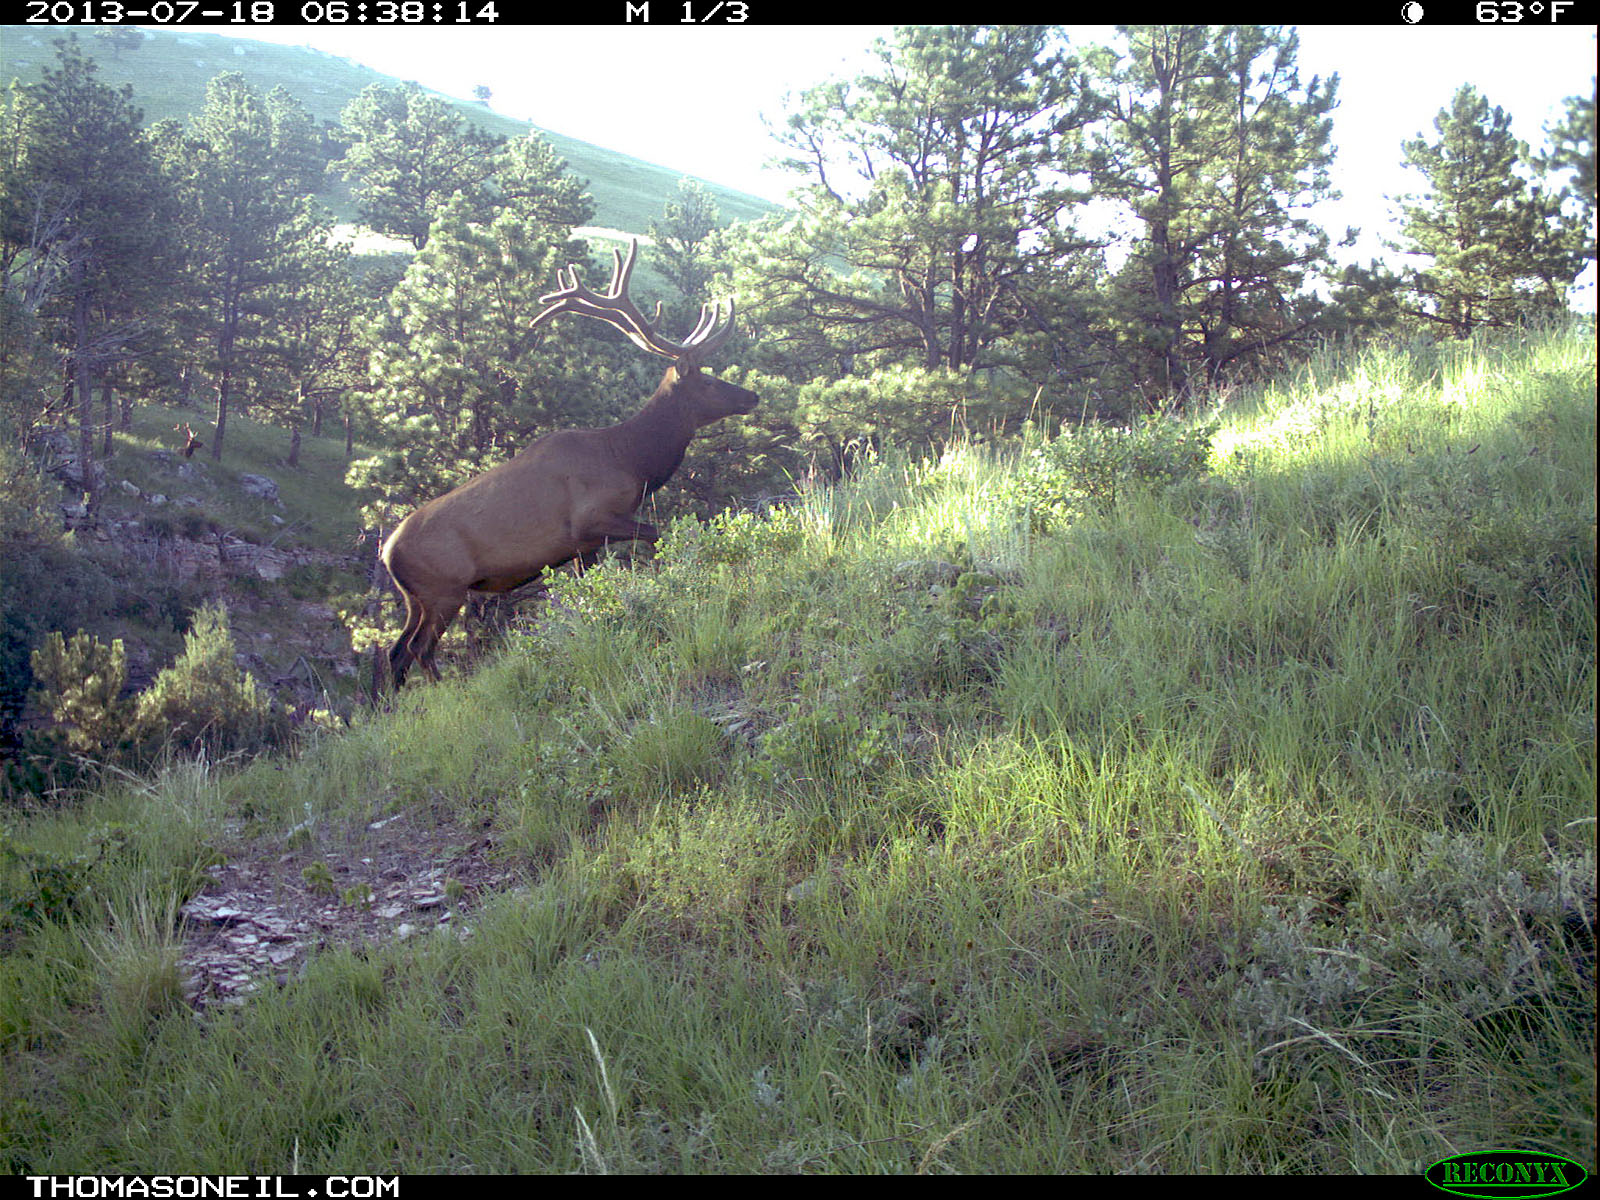 Elk on trail camera, Wind Cave National Park, South Dakota, July 18, 2013.  Click for next photo.